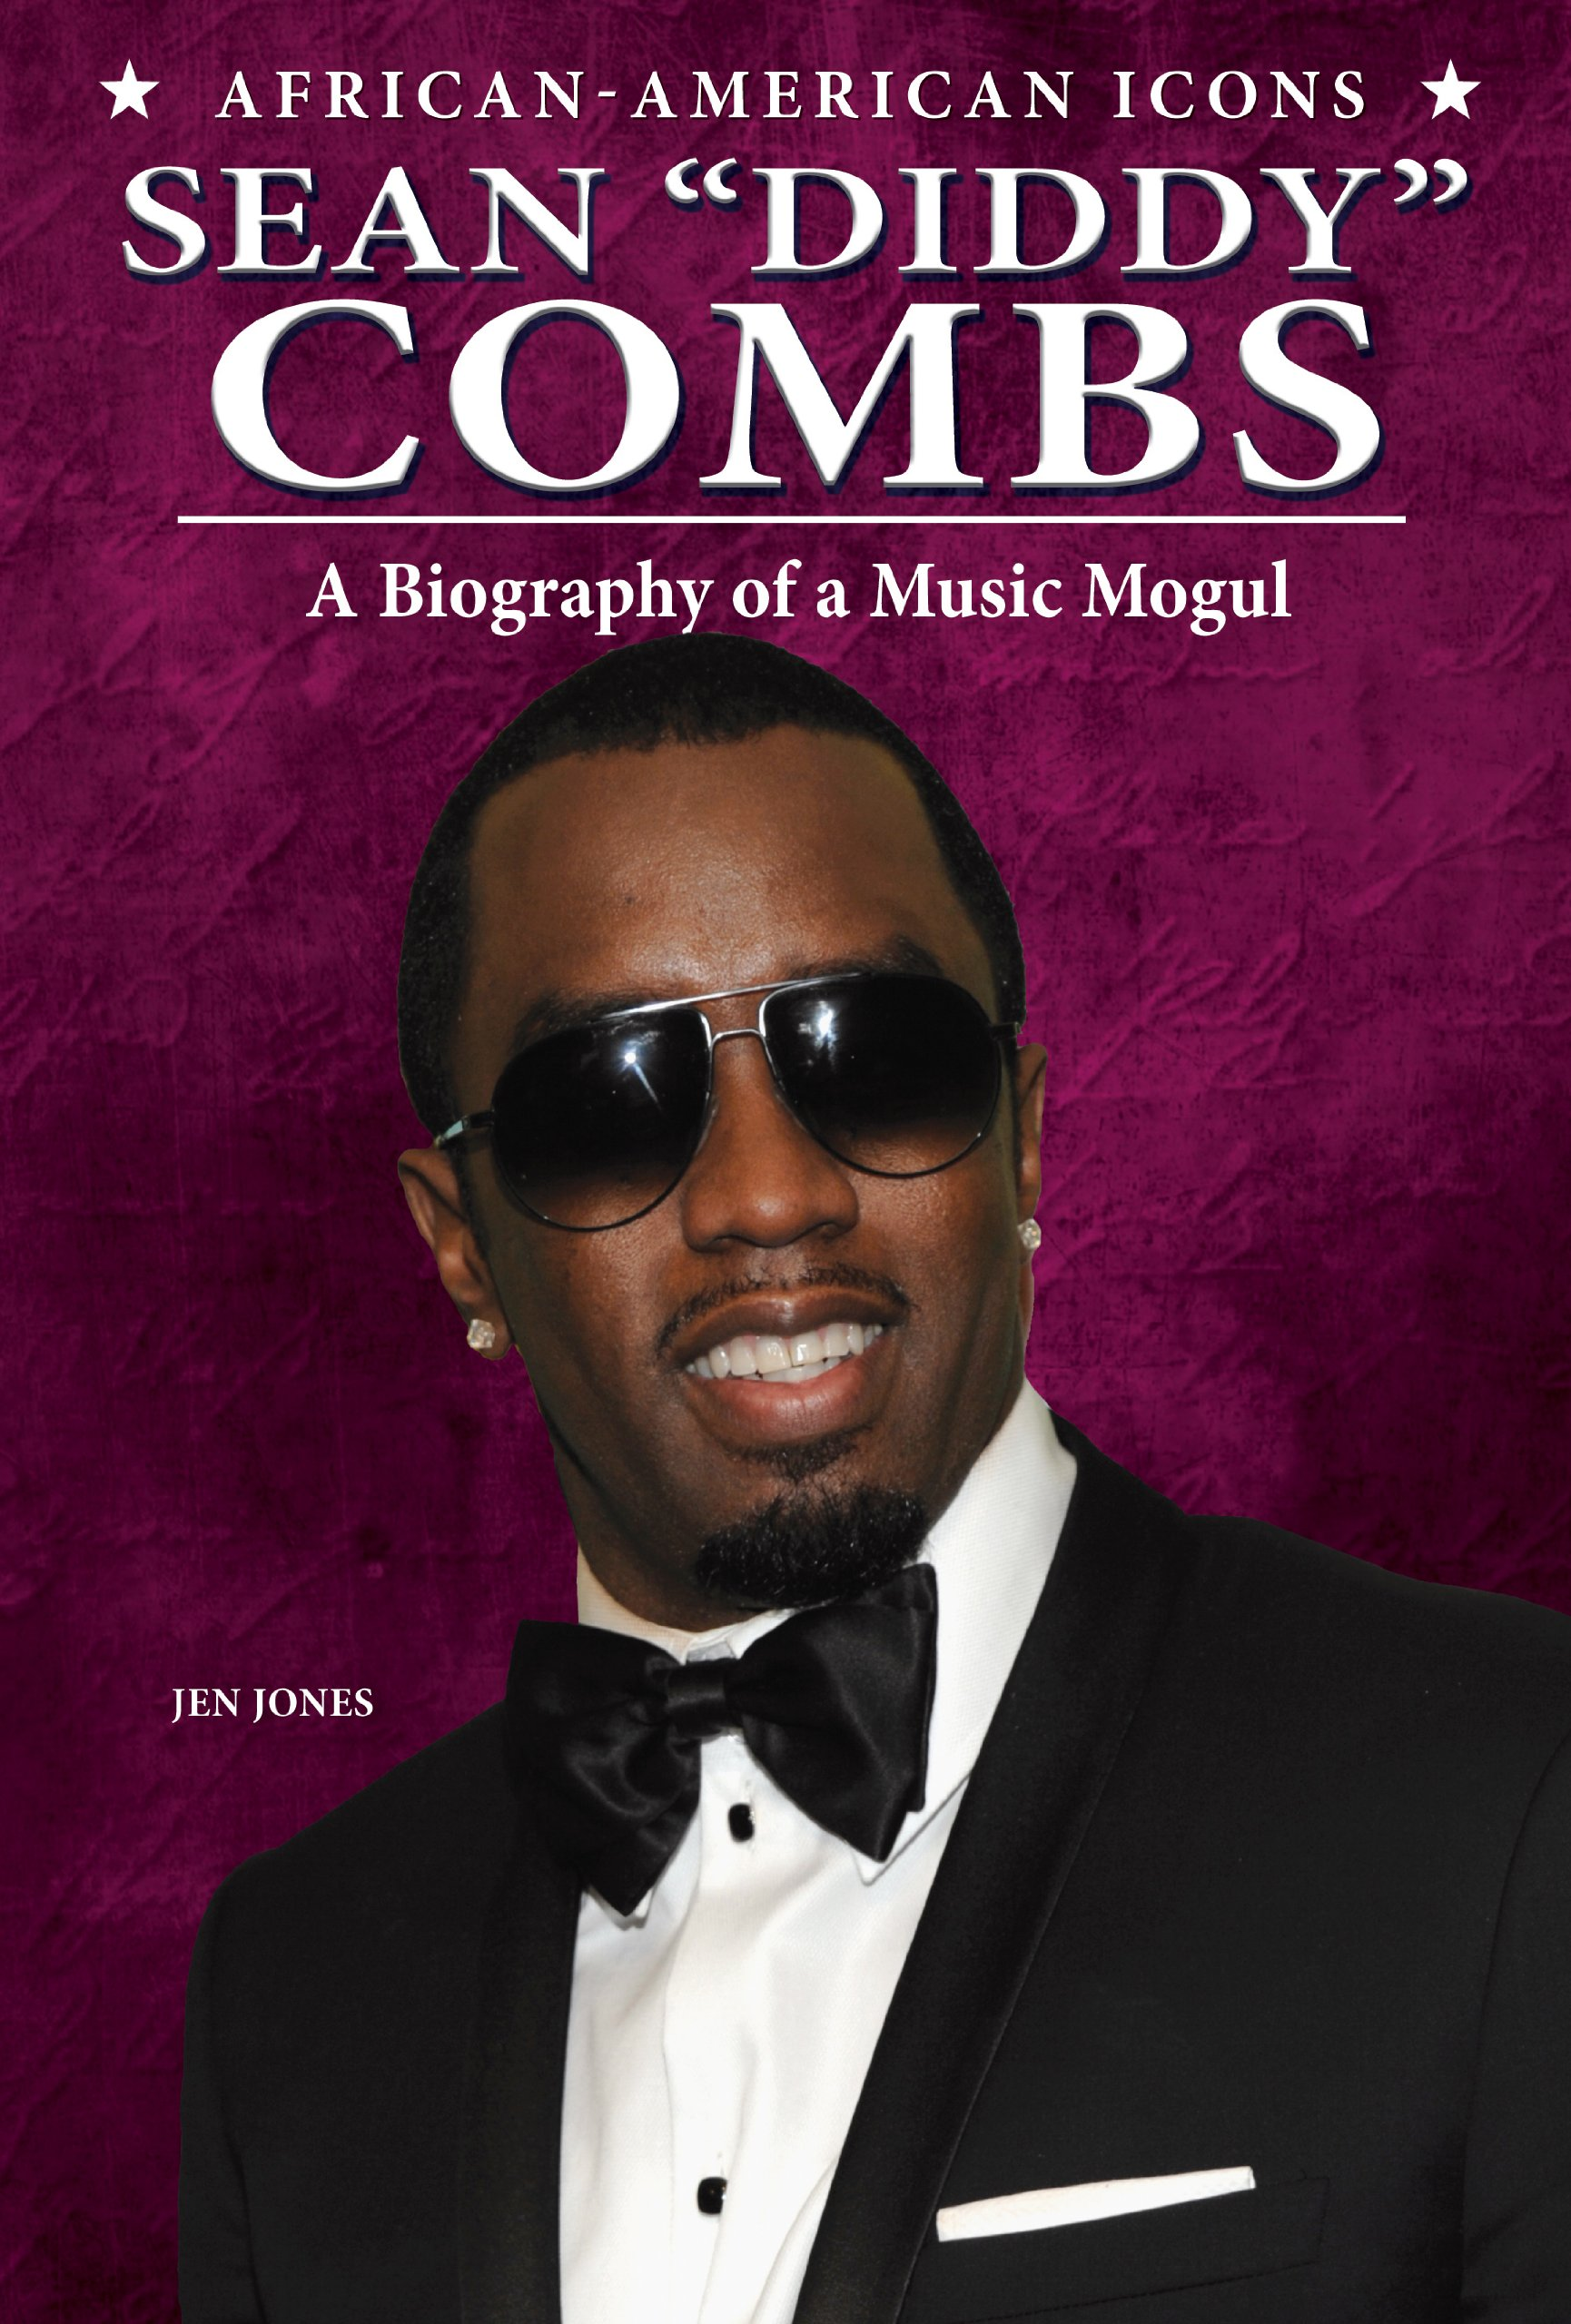 """Download Sean """"Diddy"""" Combs: A Biography of a Music Mogul (African-American Icons) pdf"""